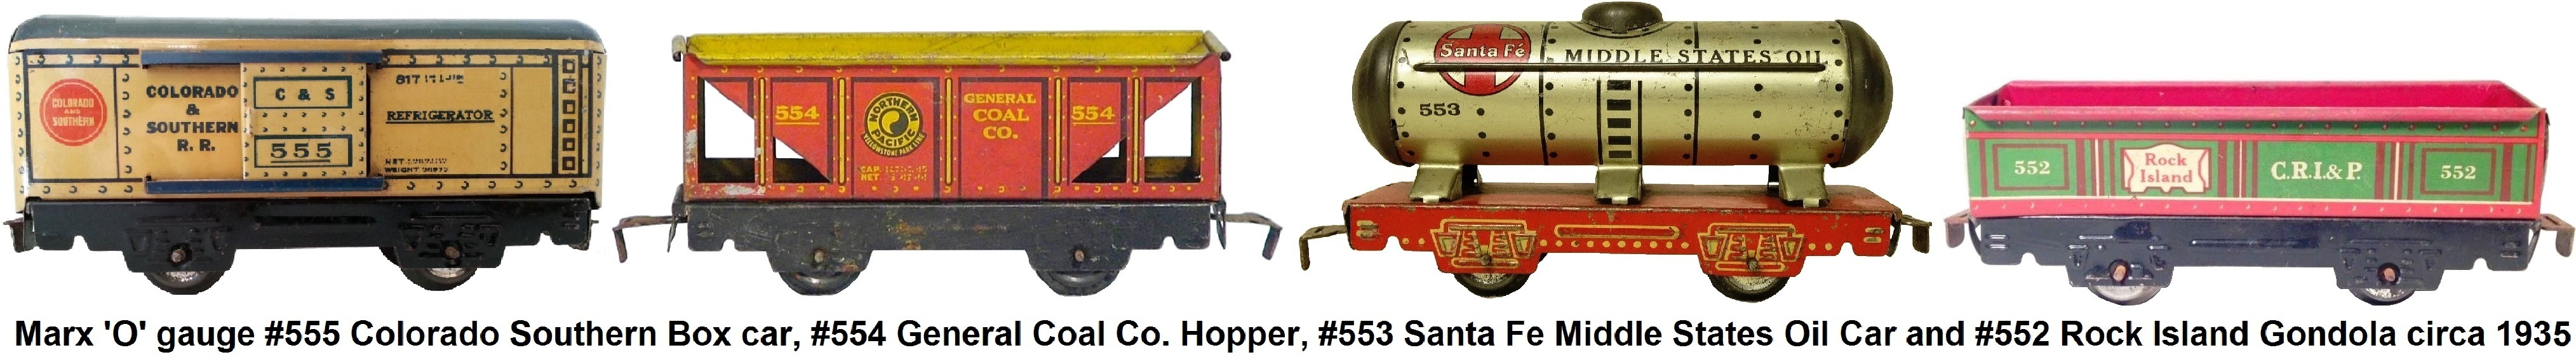 Marx 'O' gauge tinplate freight cars - #555 Colorado Southern Box Car, #554 General Coal Company Hopper, #553 Santa Fe Middle States Oil Car and #552 C R I & P Rock Island Vintage Marlines Gondola